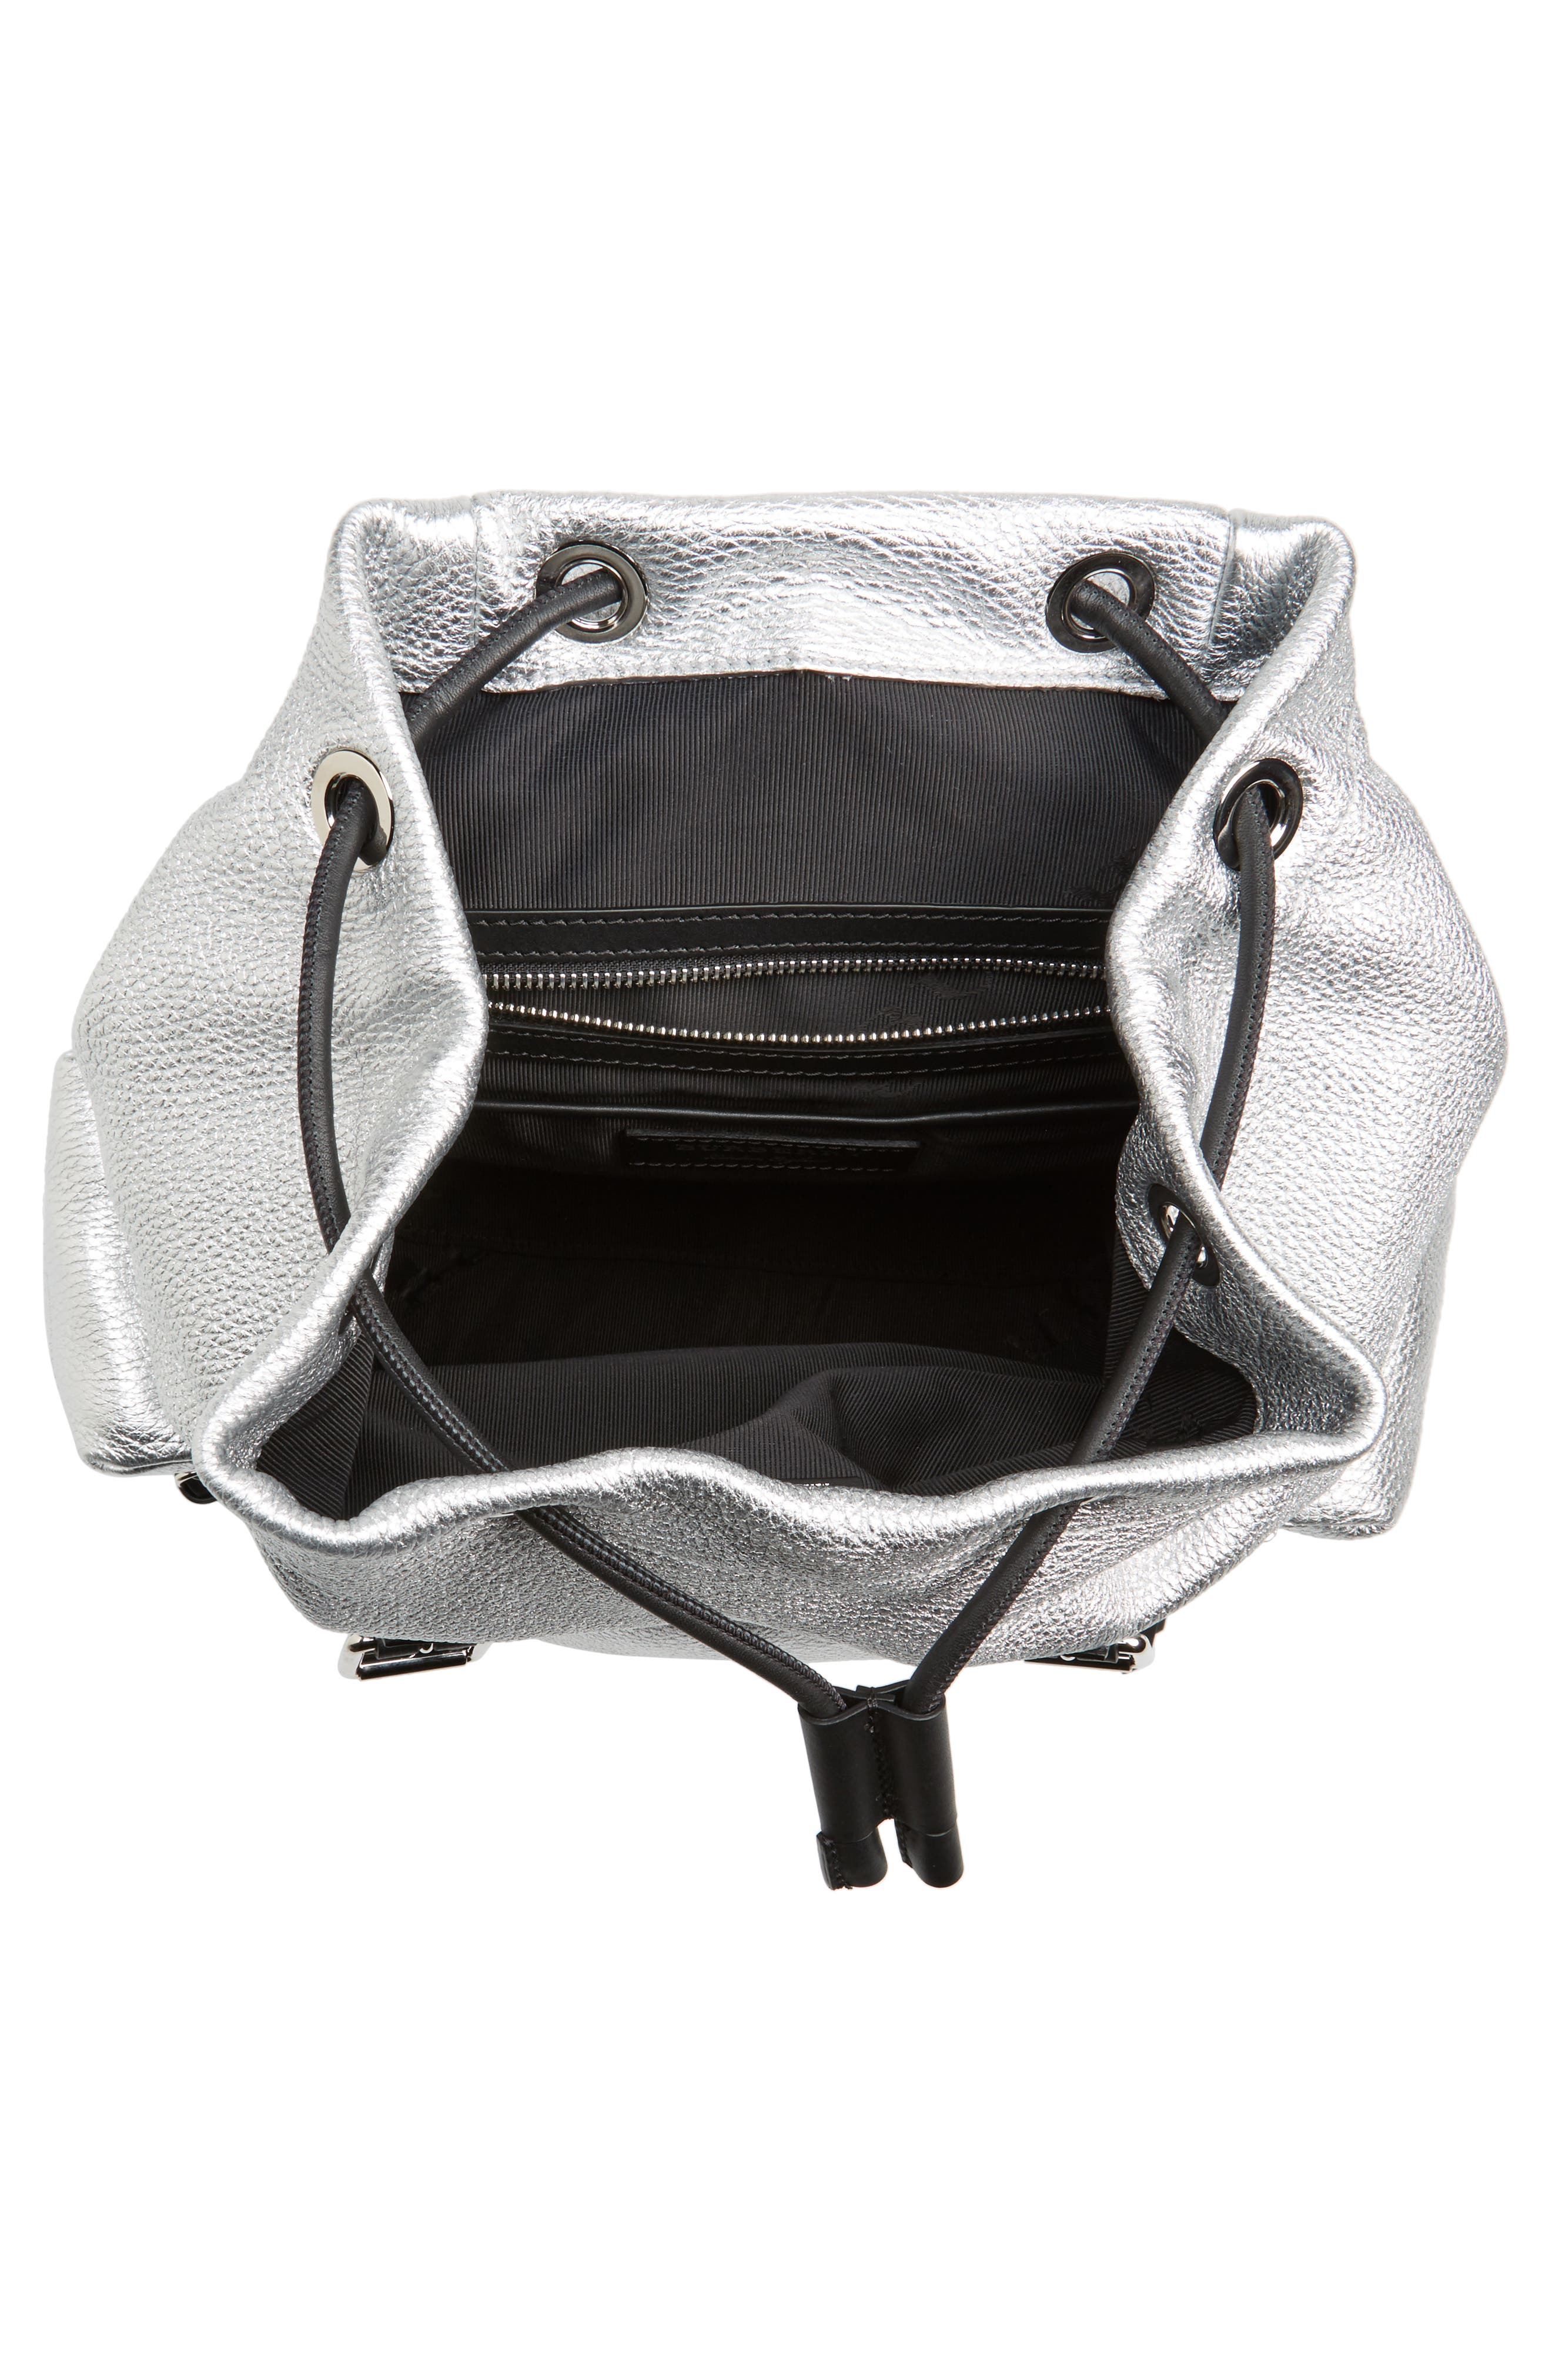 Medium Rucksack Metallic Leather Backpack,                             Alternate thumbnail 4, color,                             Silver